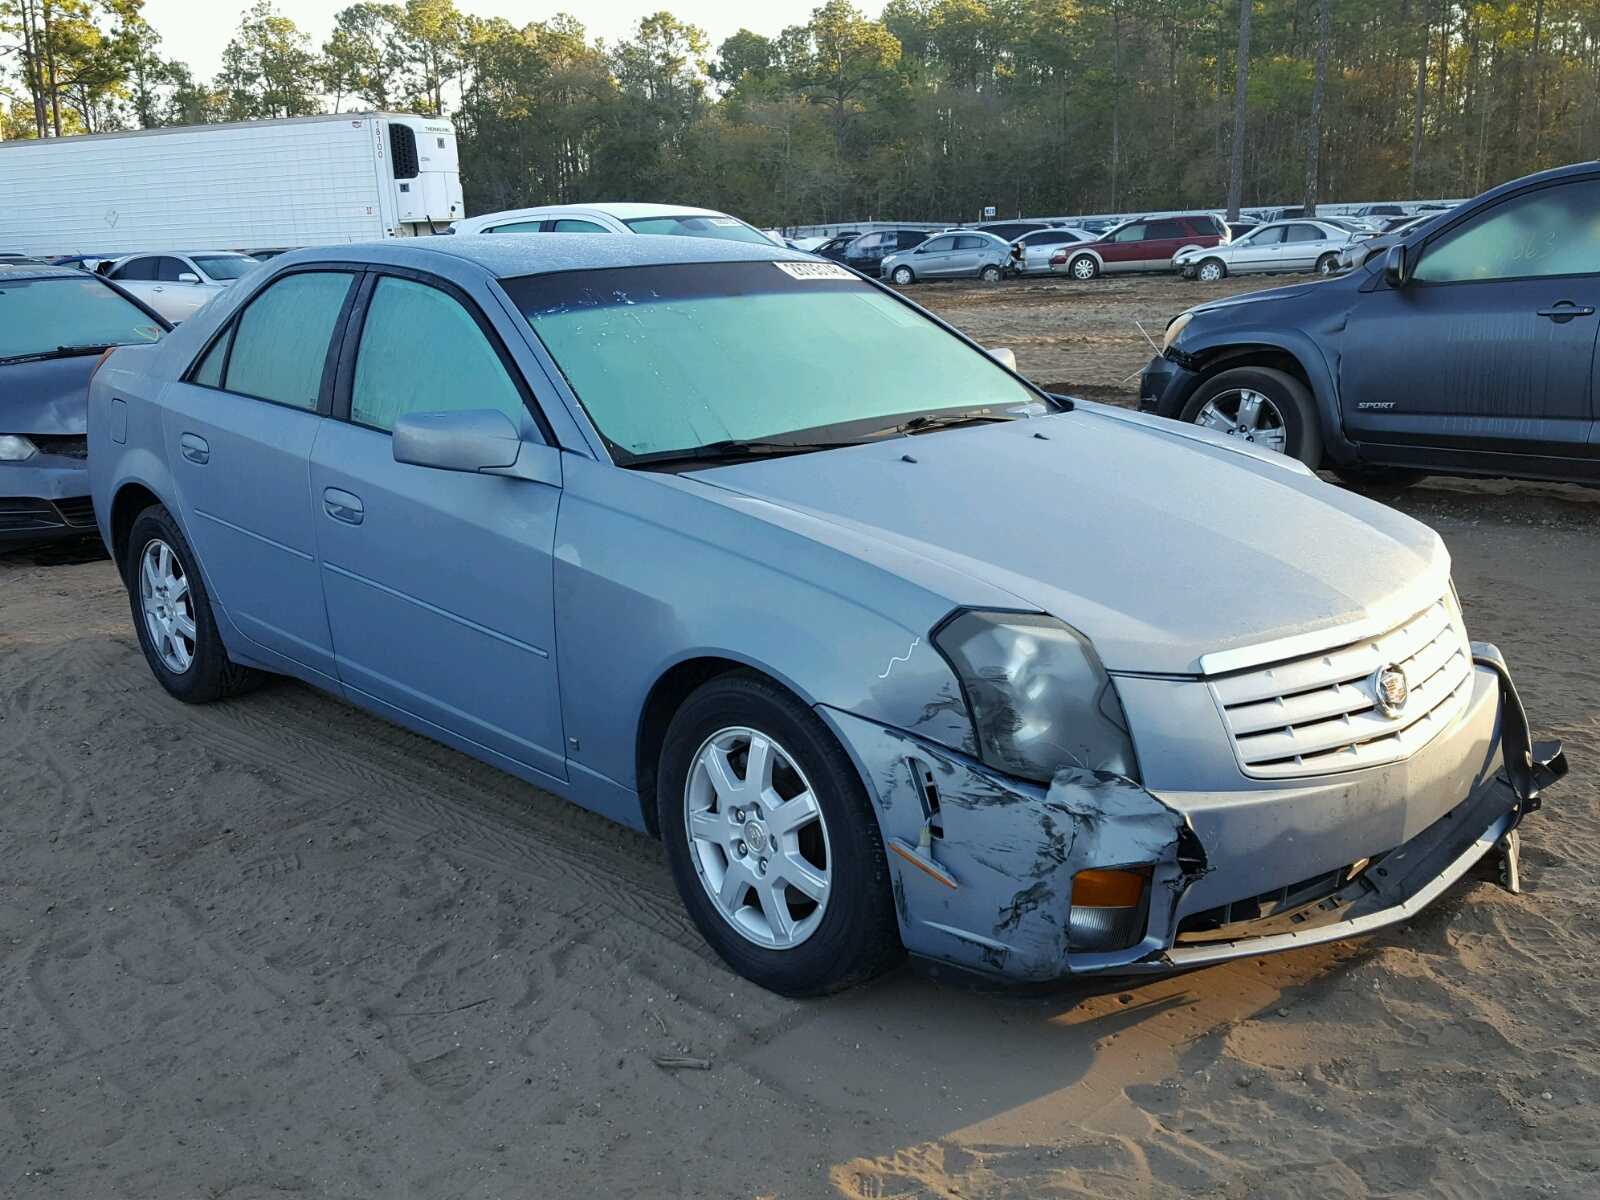 il in a di sales auto at for r inventory details cadillac godfrey sale cts